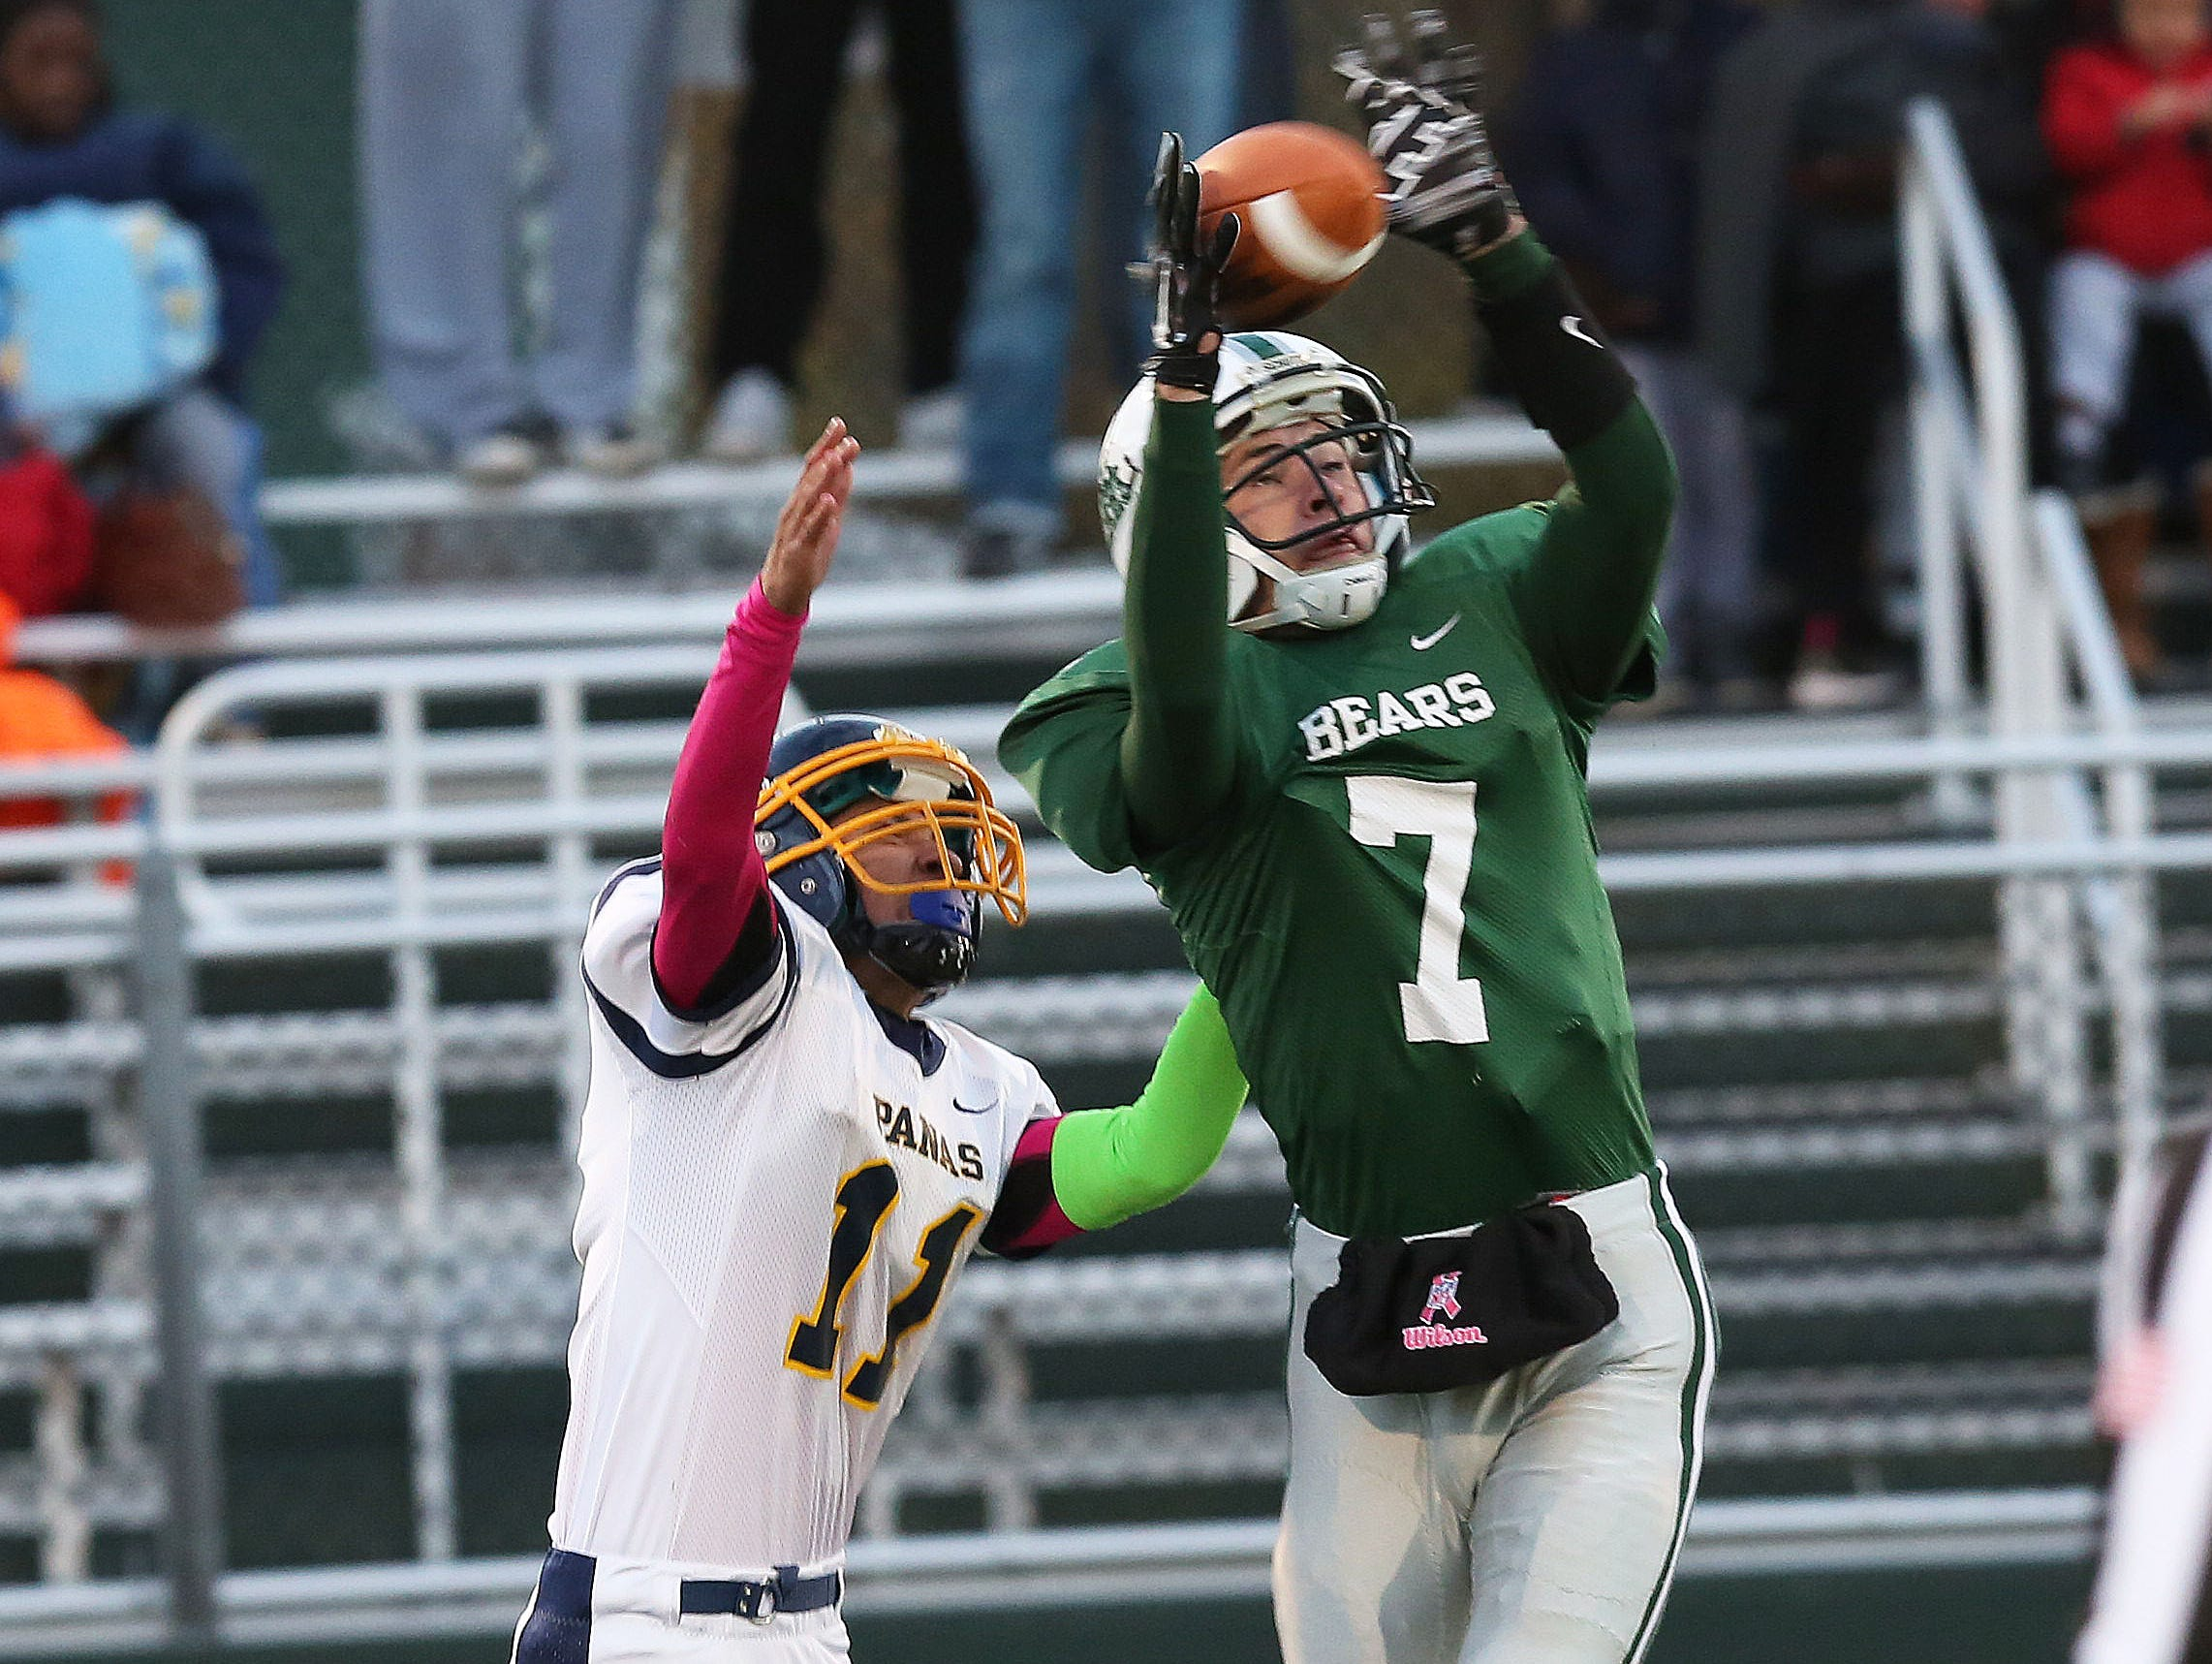 From right, Brewster's Matthew Catalano (7) breaks up a pass intended for Panas's Eric Otero (11) during football action at Brewster High School Oct. 17, 2015.